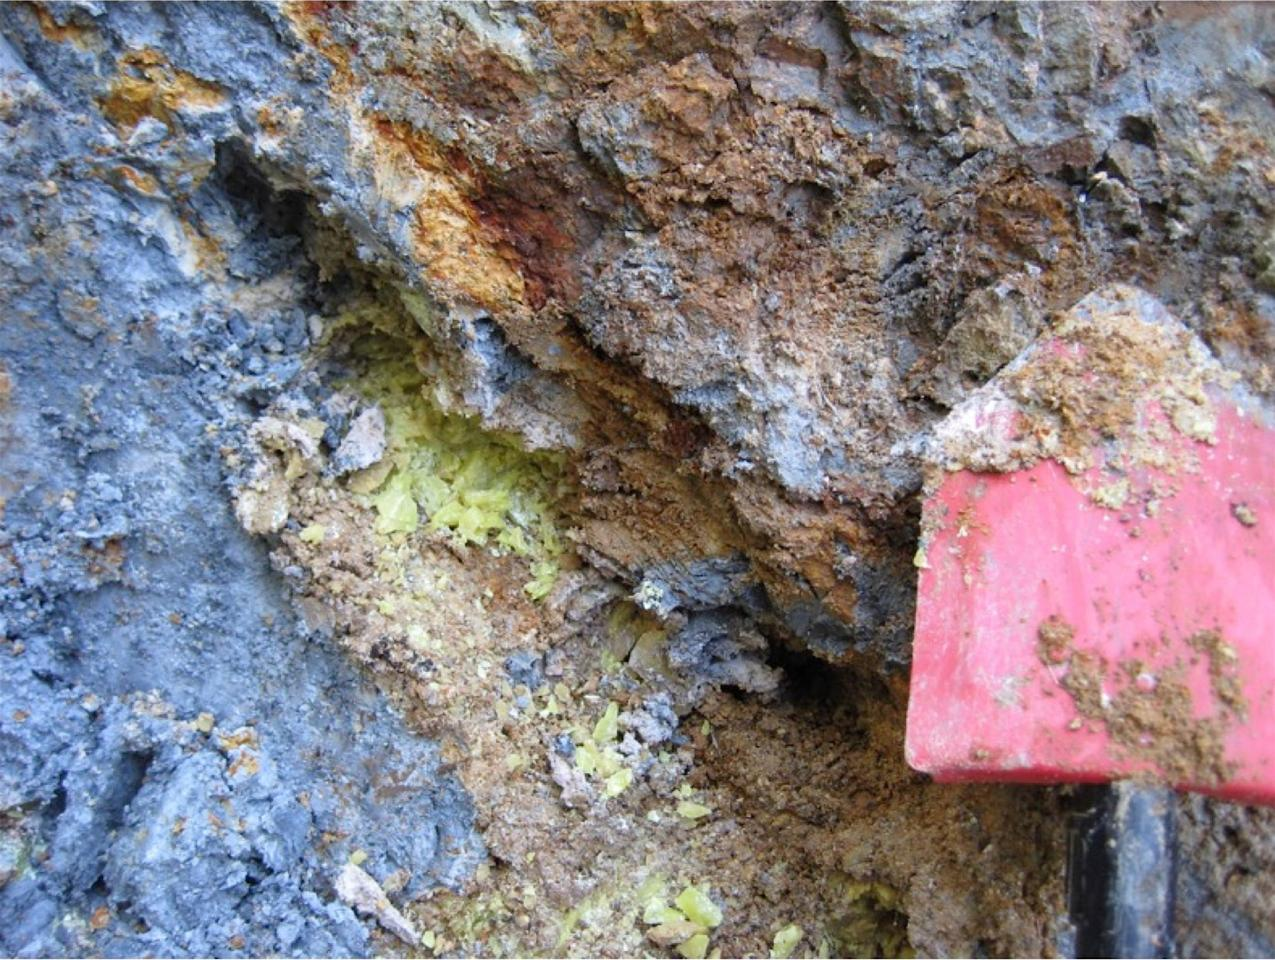 A natural deposit of the blue clay in Oregon